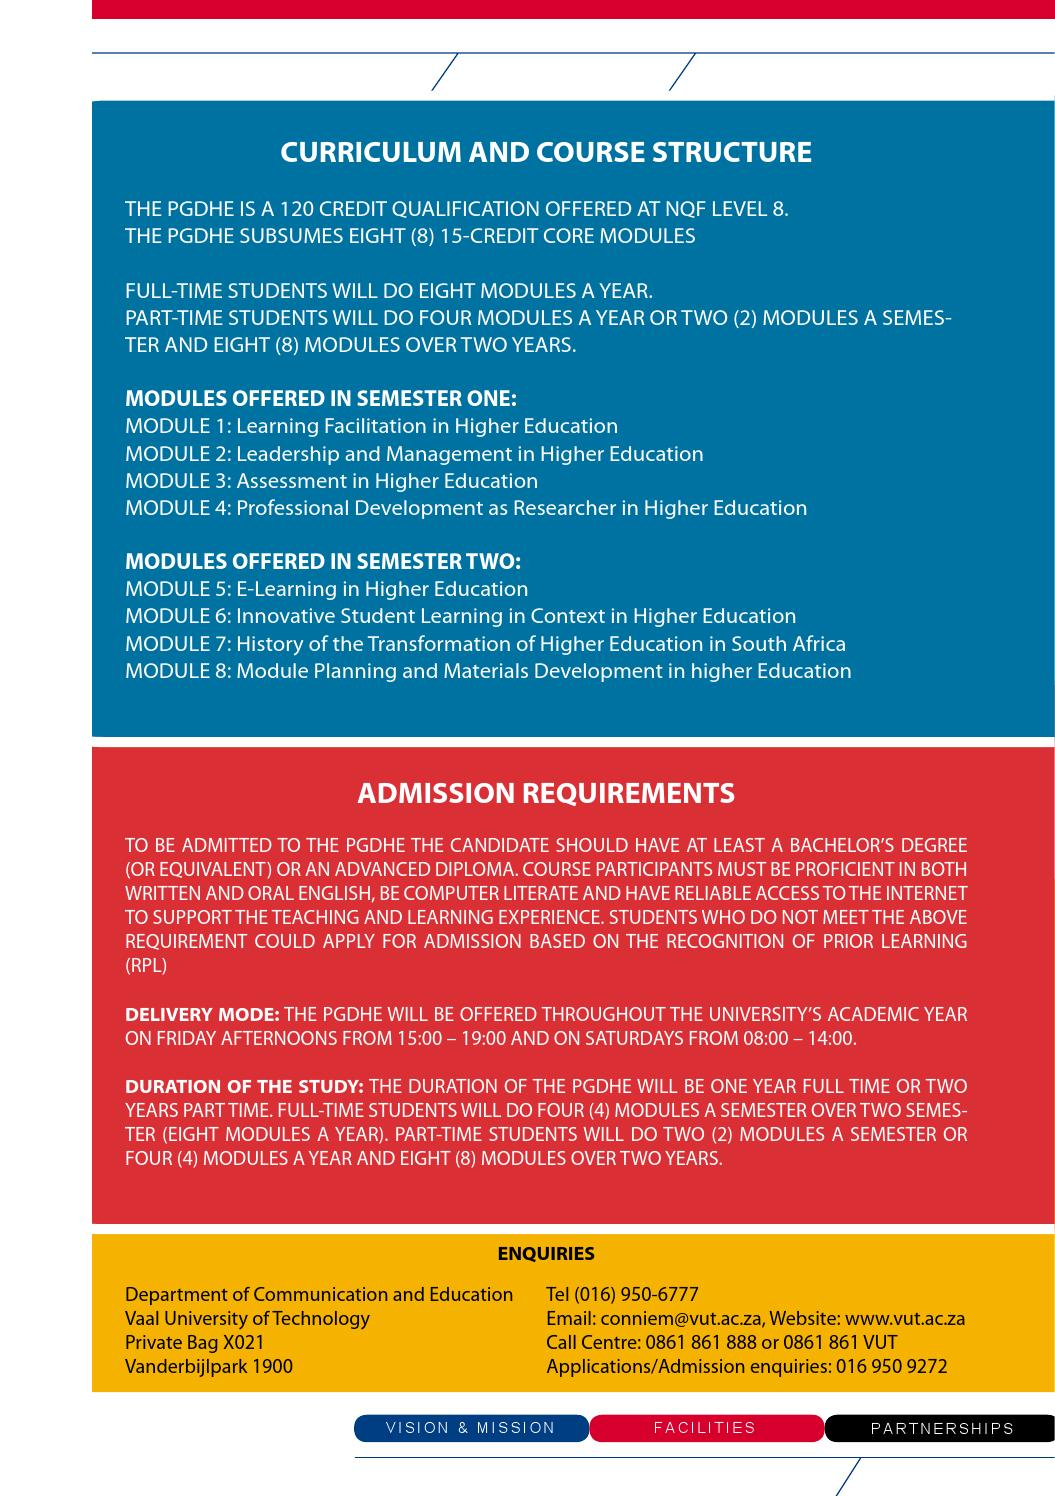 Satn Changes To Higher Education Qualifications In South Africa